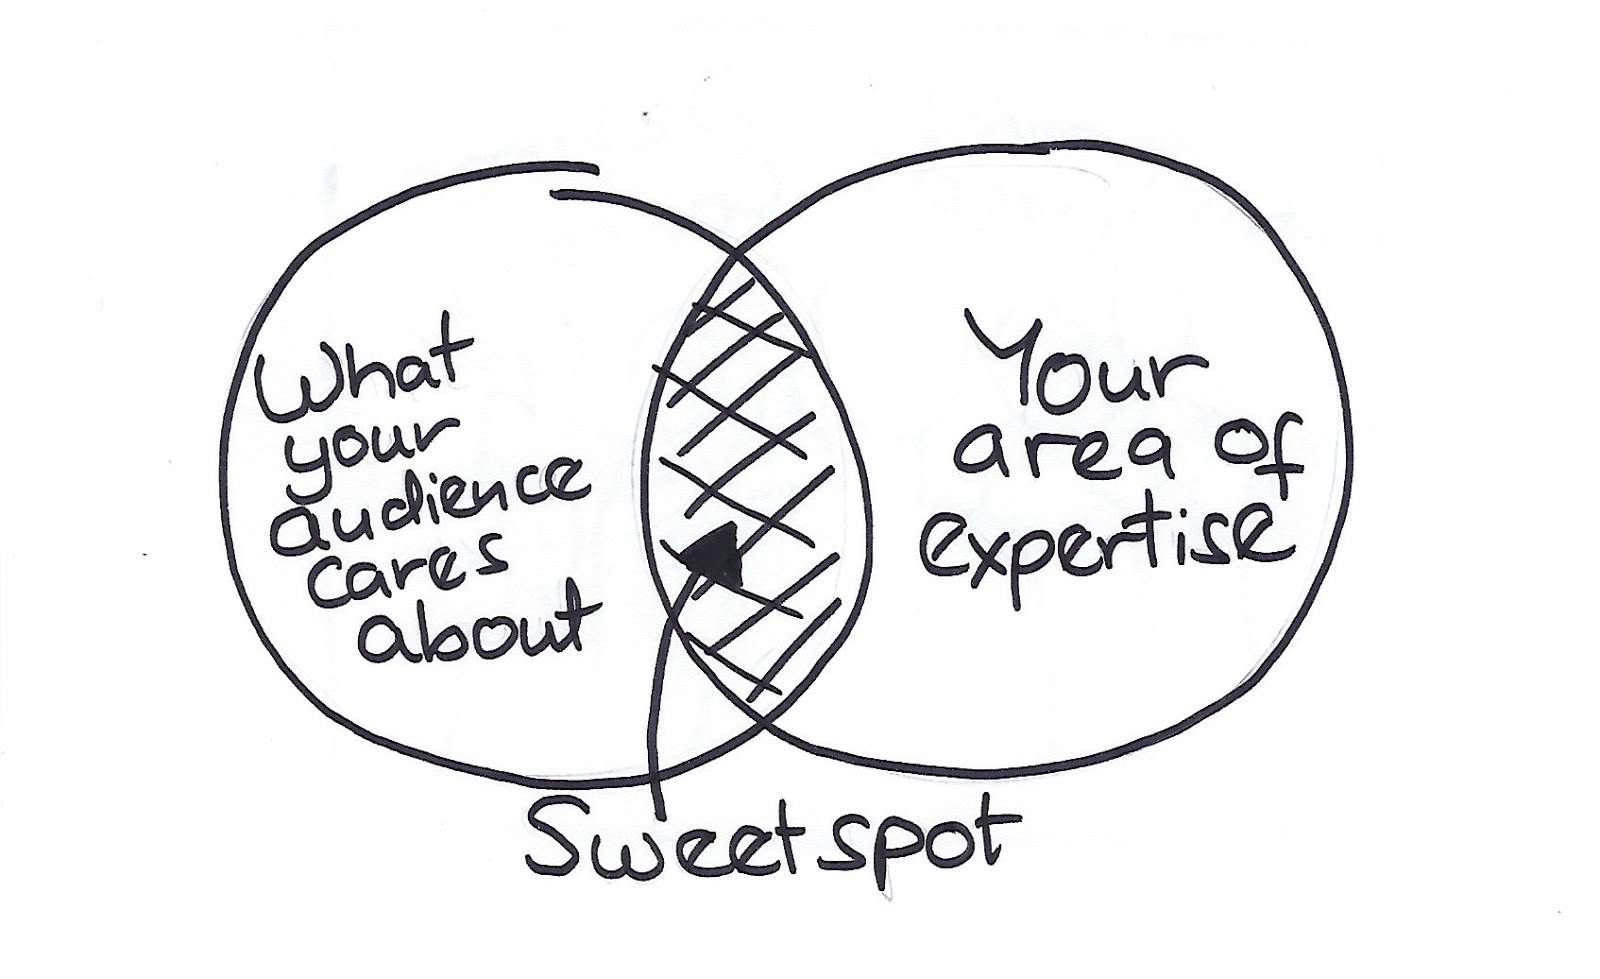 5f120db461bcc7.96183873 - Blog Topics: How to find Your Sweet Spot (Even in a Boring Niche)